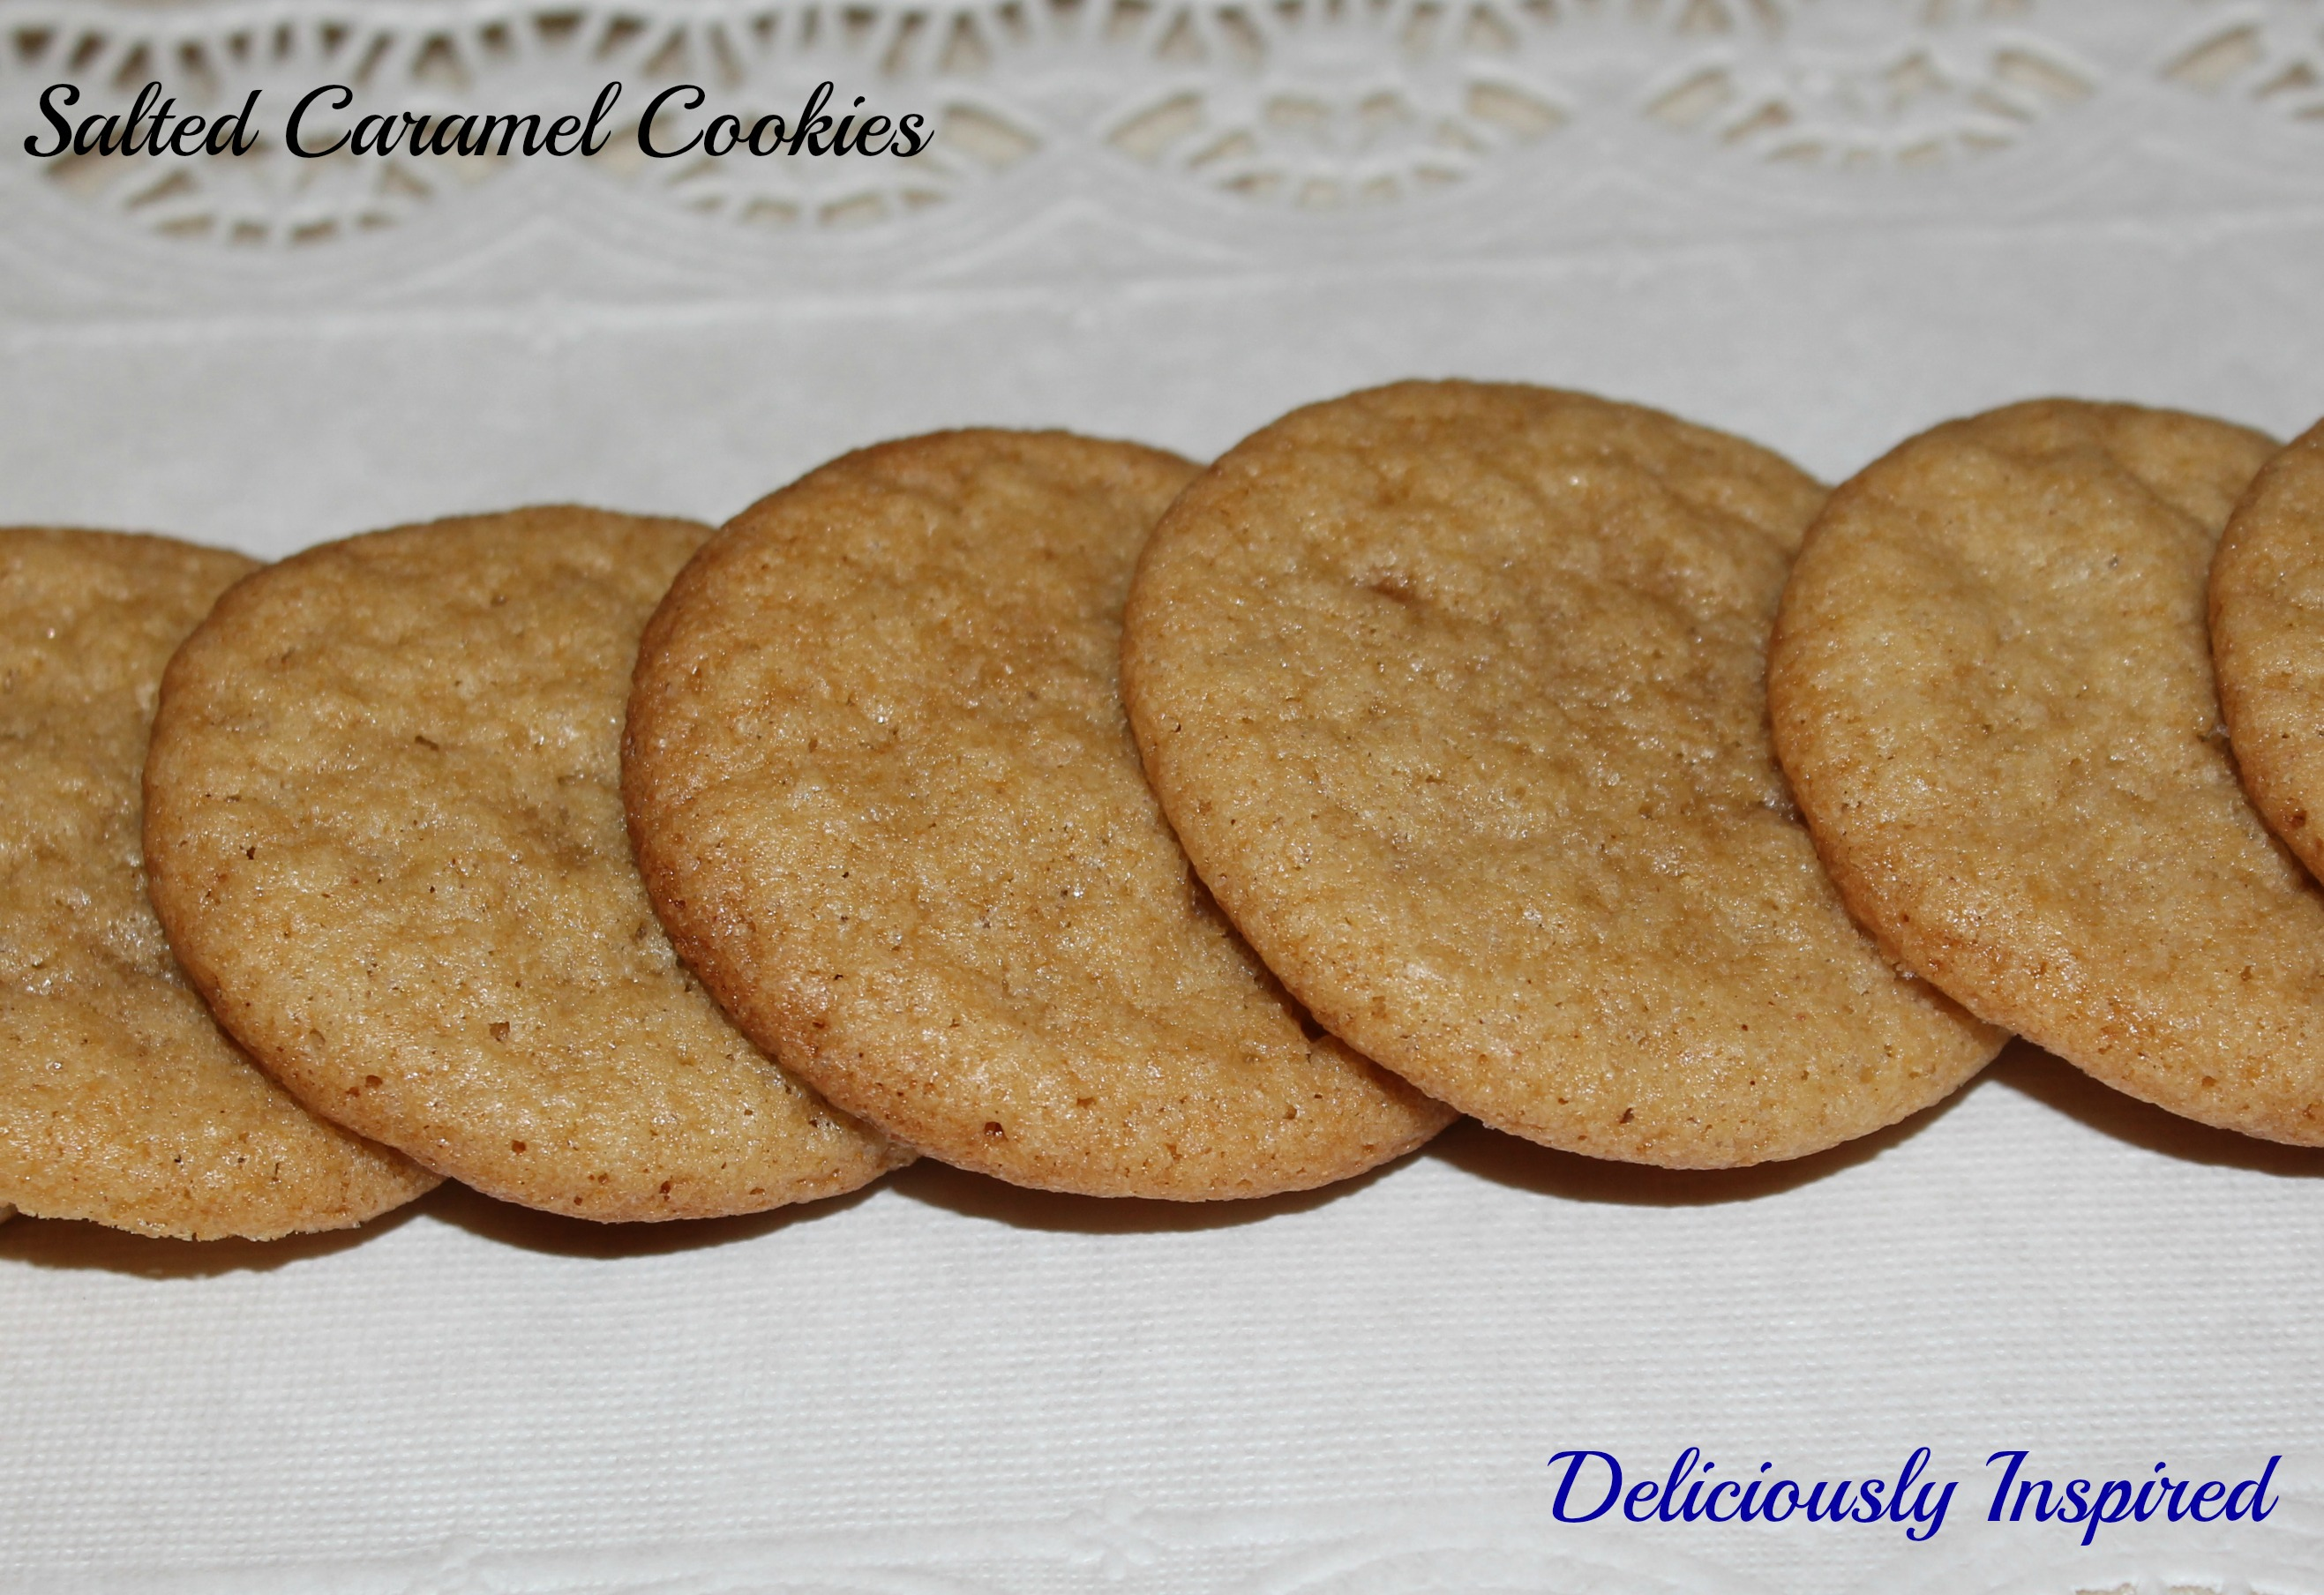 Salted Caramel Cookies - presentation - length